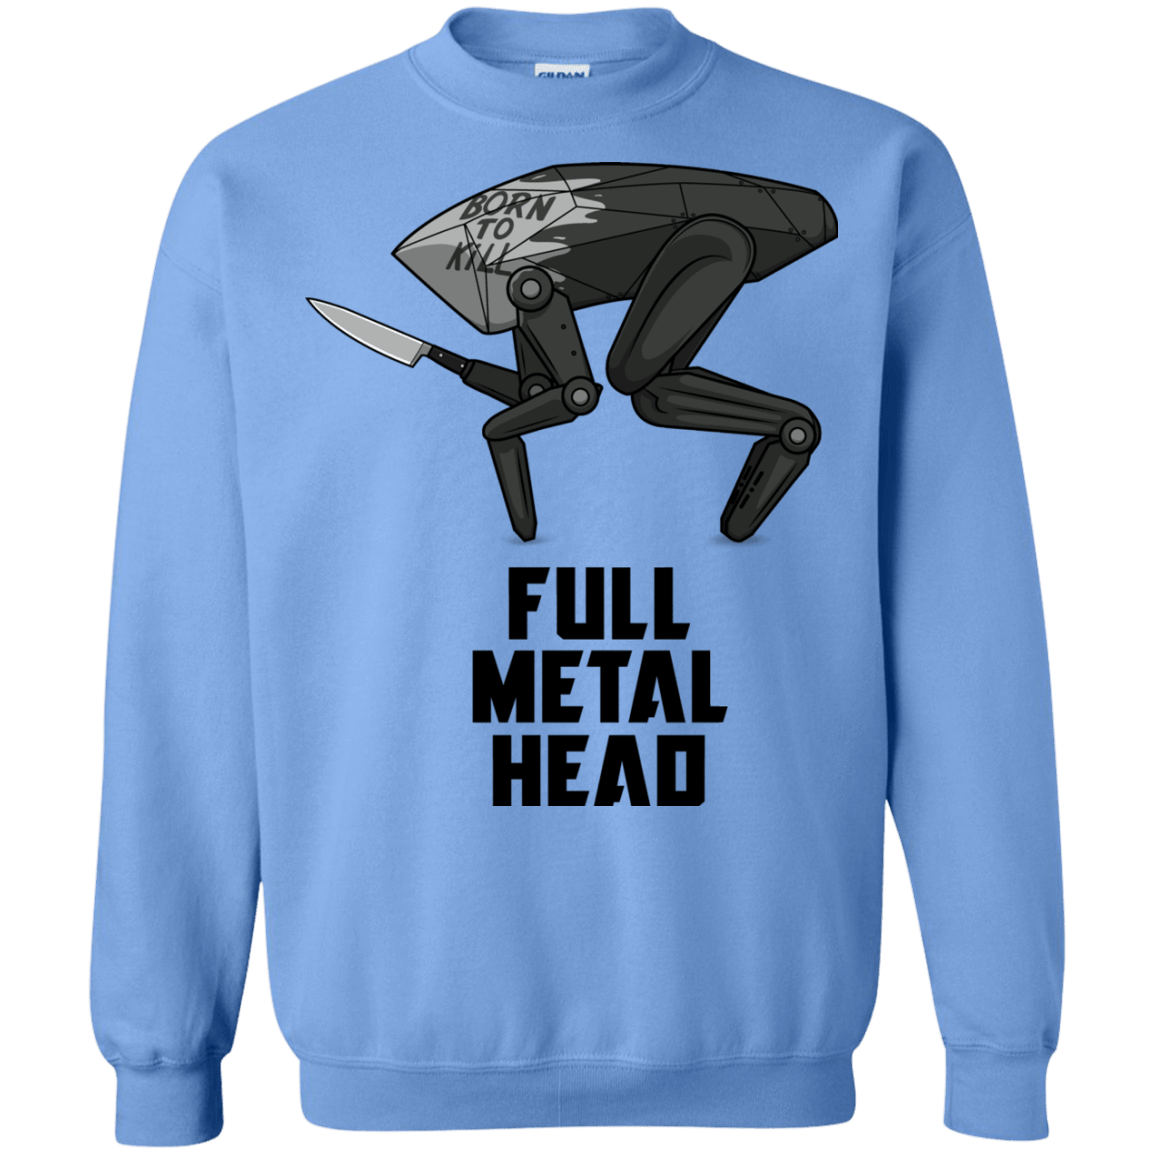 Sweatshirts Carolina Blue / S Full Metal Head Crewneck Sweatshirt